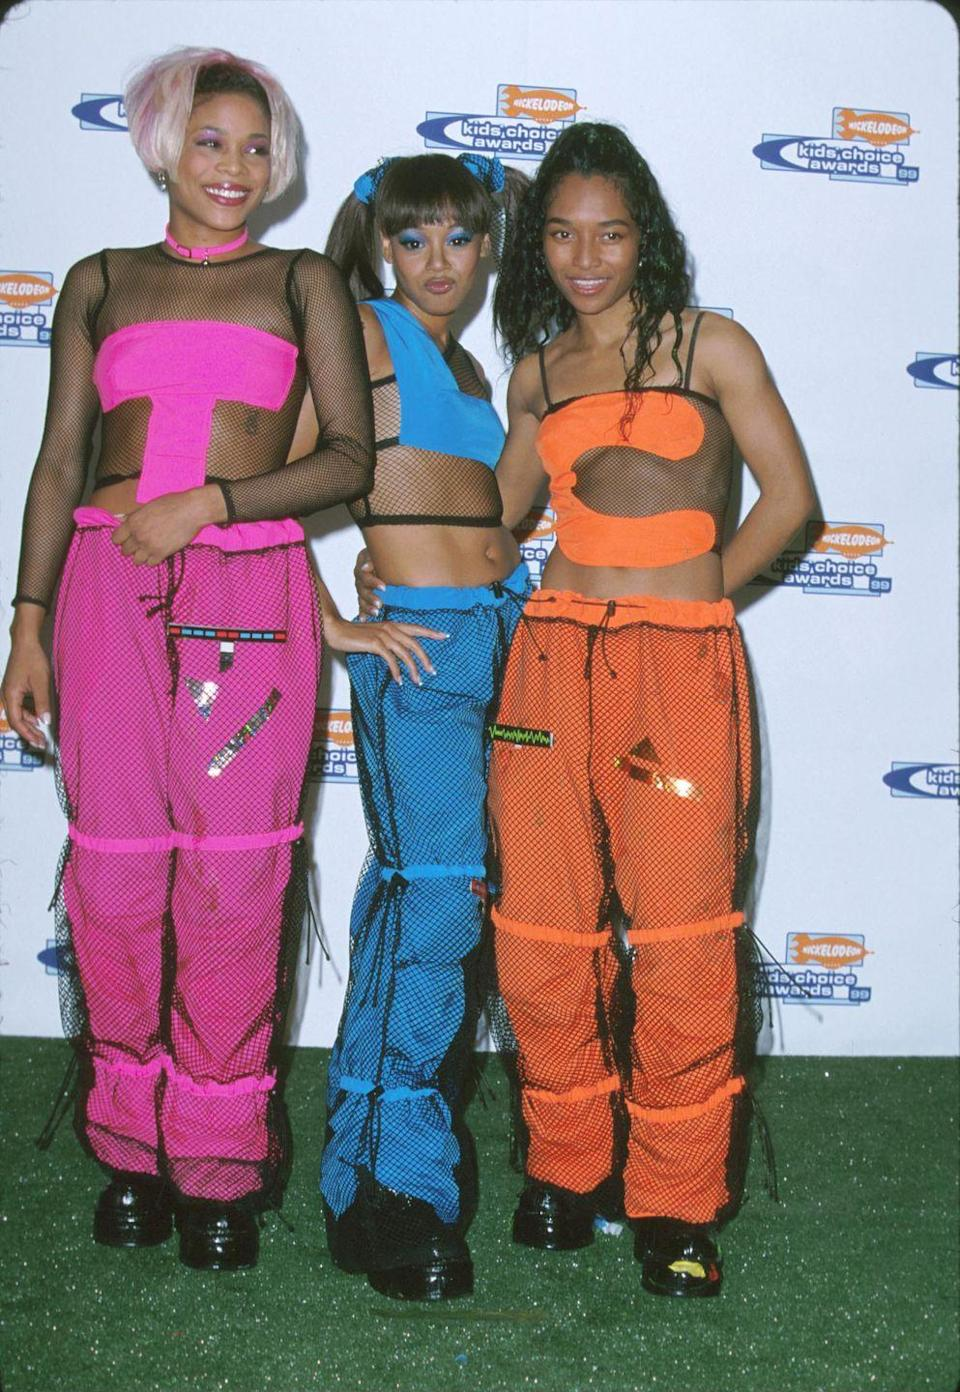 <p>Made of nylon, a material used for parachutes (hence the name), these trousers often can in loud neon colors, which made the wrong kind of statement. </p>